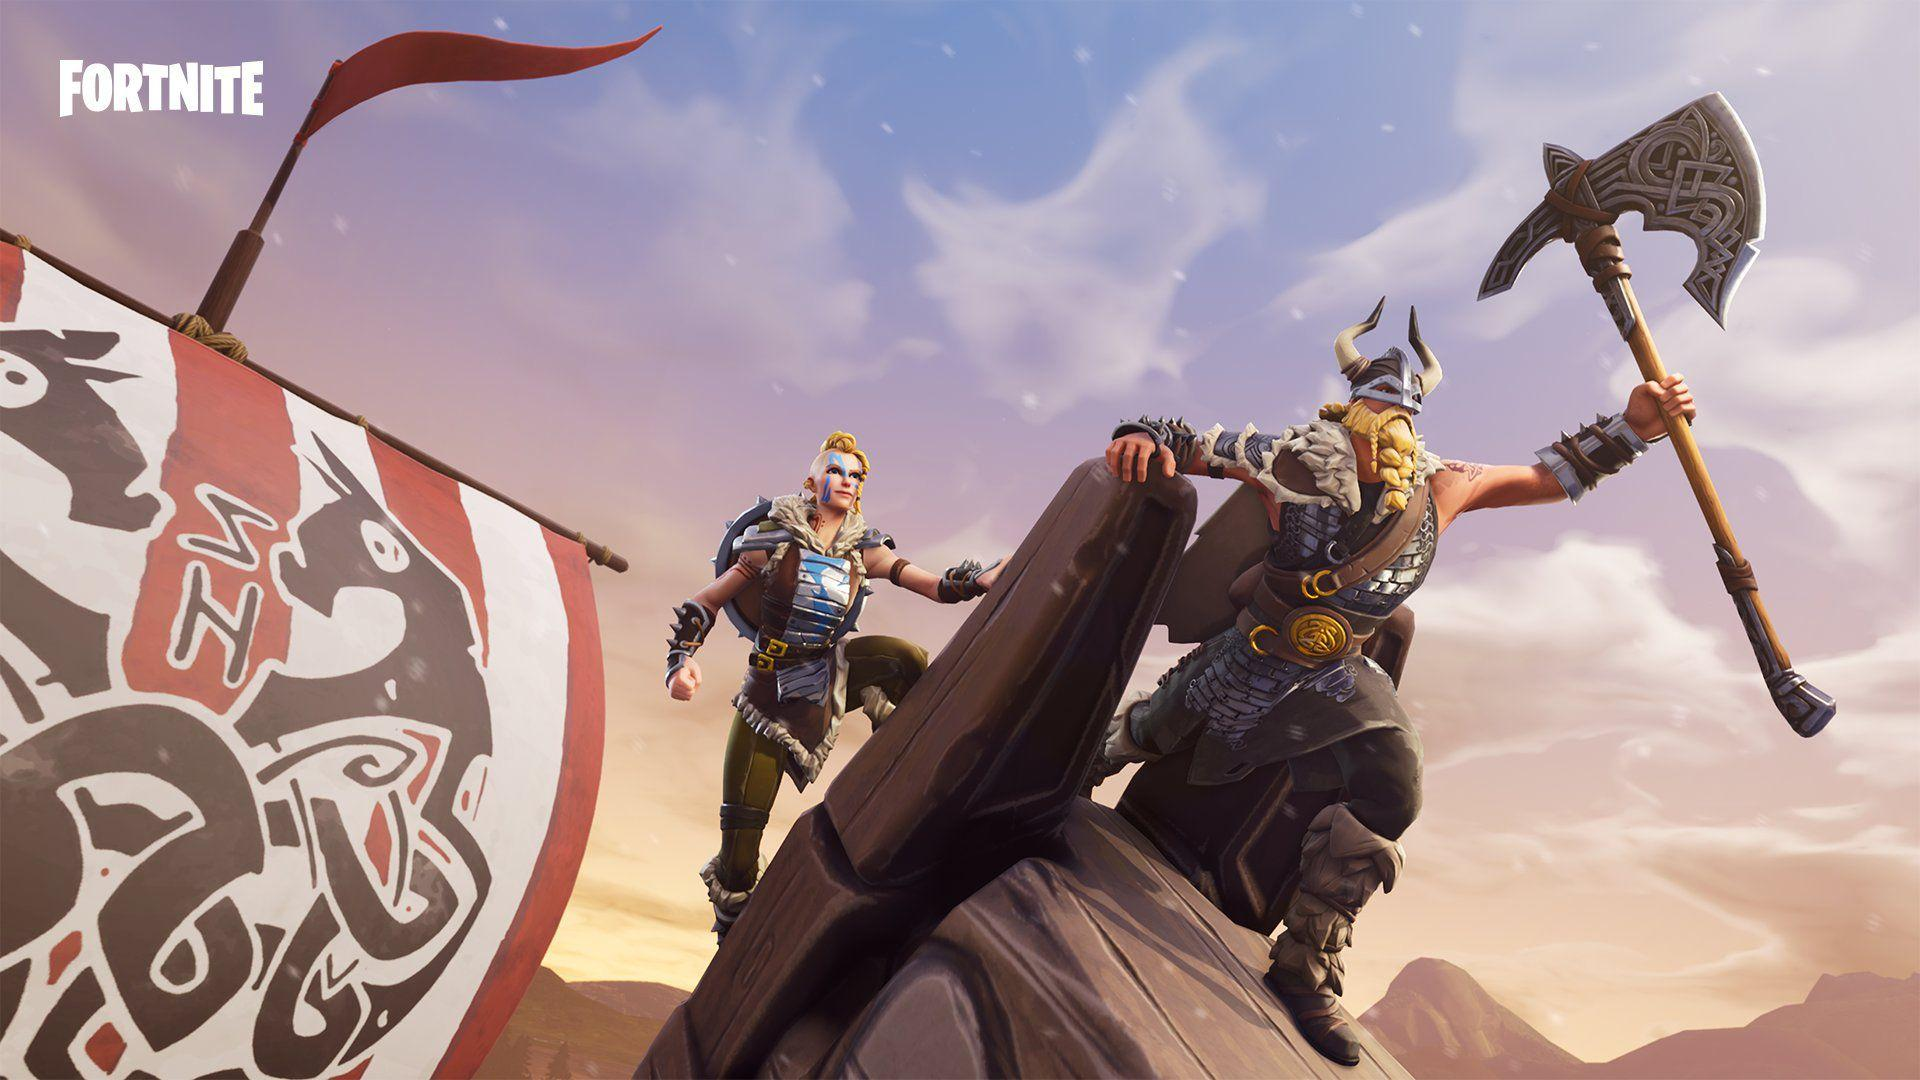 Fortnite Backgrounds Vikings Wallpapers and Free Stock Photos